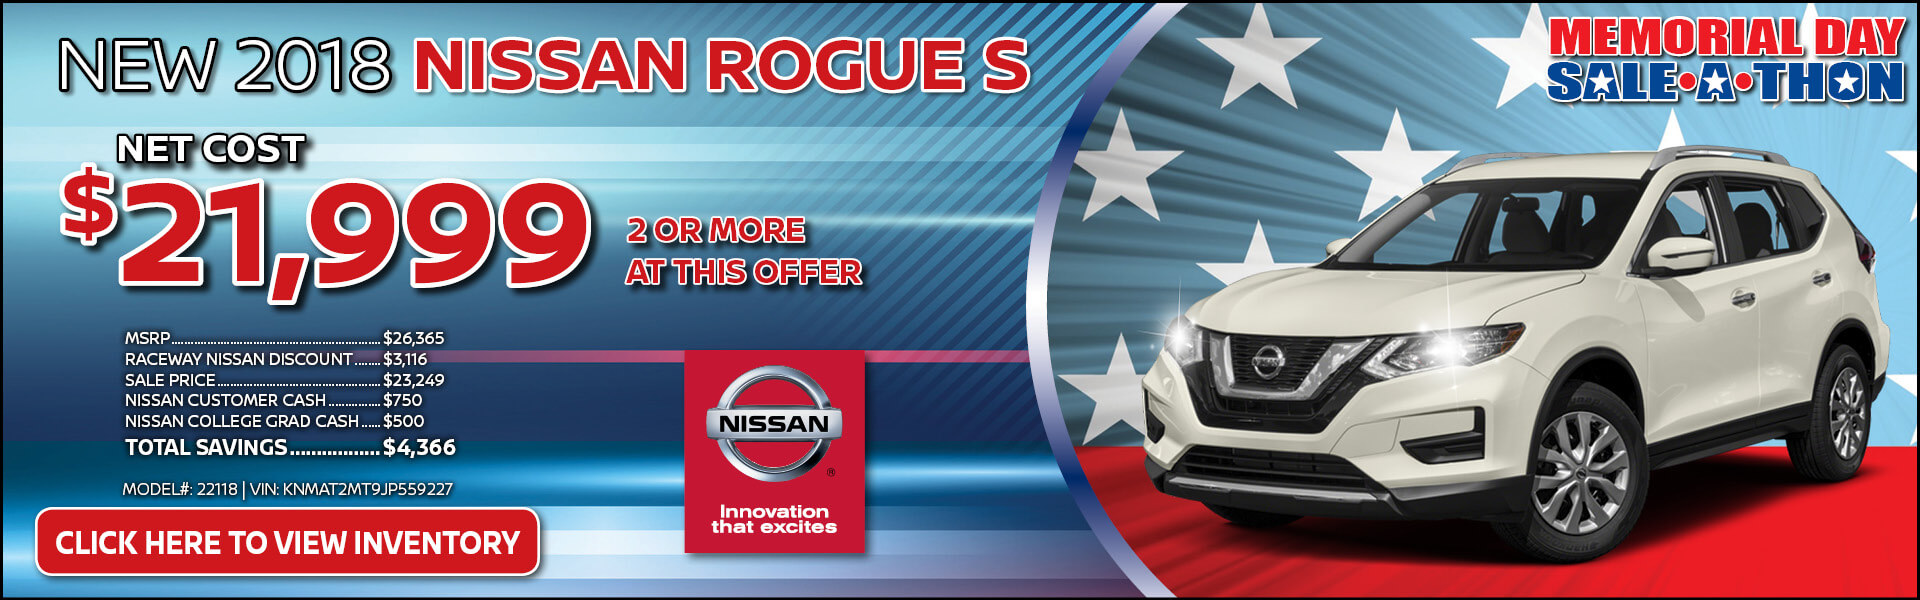 Nissan Rogue $21,999 Purchase